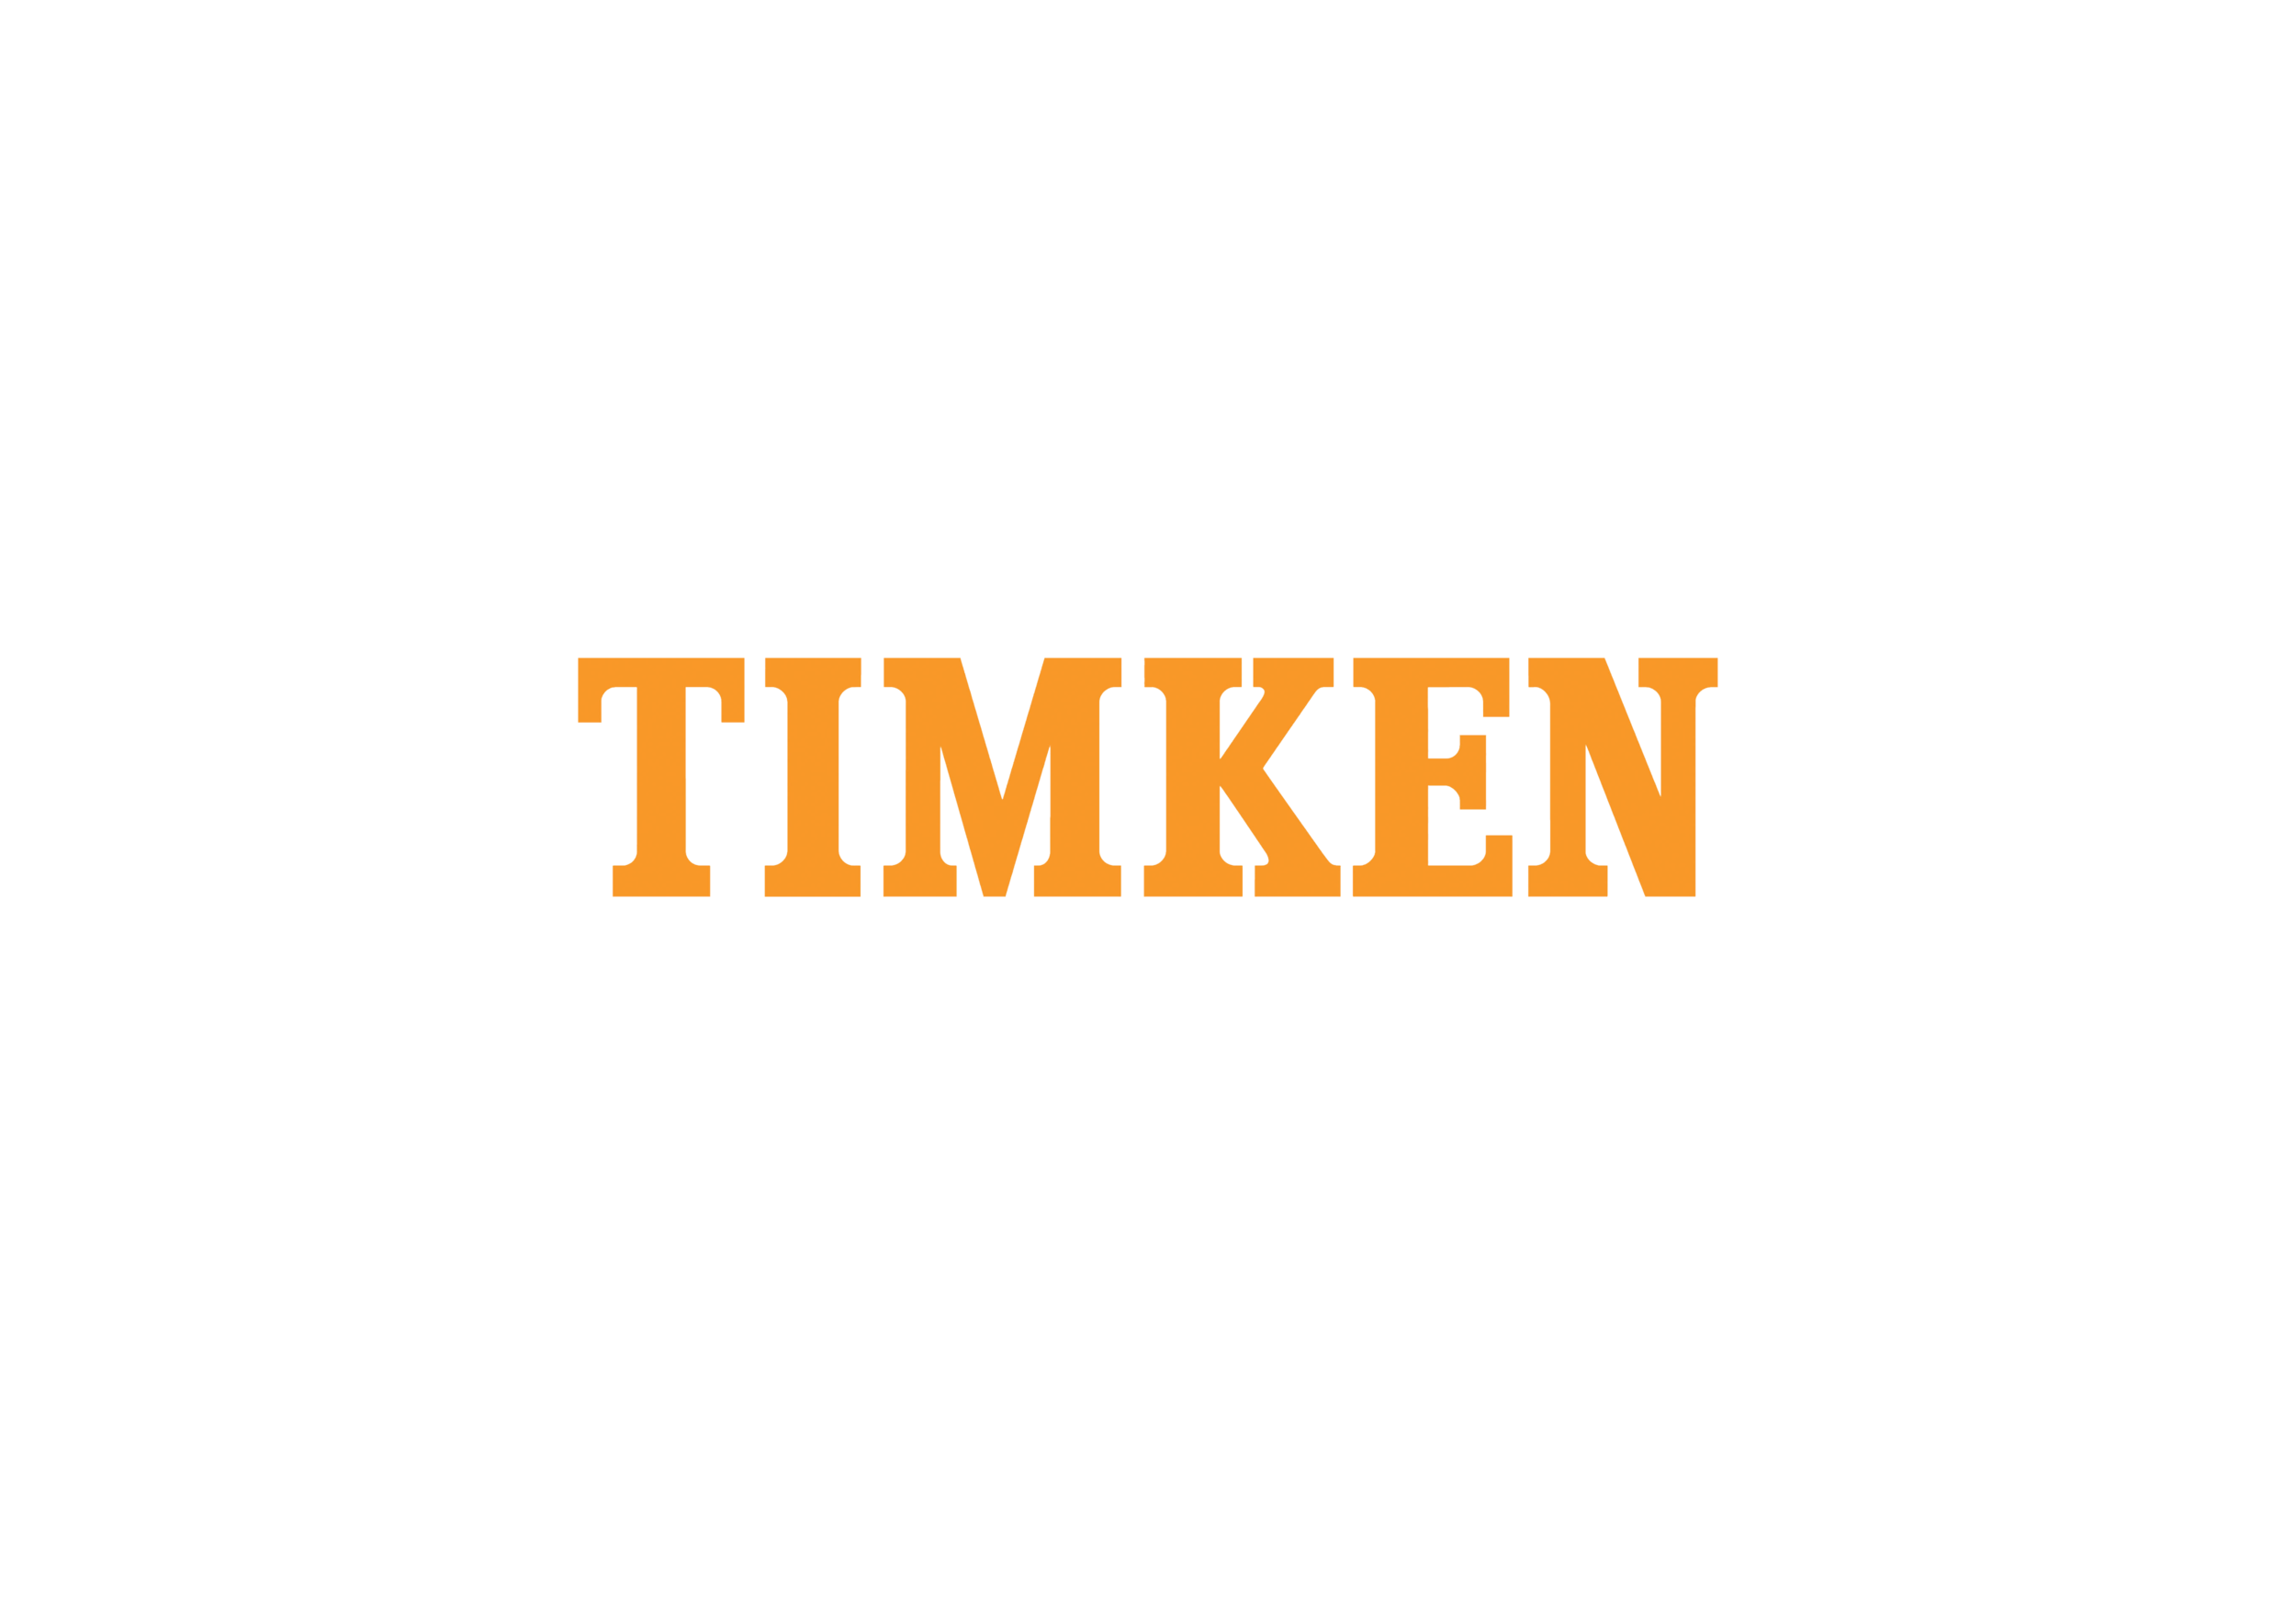 Timken - Timken is a world leading manufacturer of bearings and power transmission products. Specializing in tapered roller bearings and spherical roller bearings, Timken delivers a wide range of anti-friction bearings.Bearings: ball bearings, cylindrical bearings, housed units, precision bearings, spherical and tapered roller bearings, seals, wheel hub units.Reasons to choose Timken: high quality product, wide variety of applications and extensive product knowledge in lots of different areas.